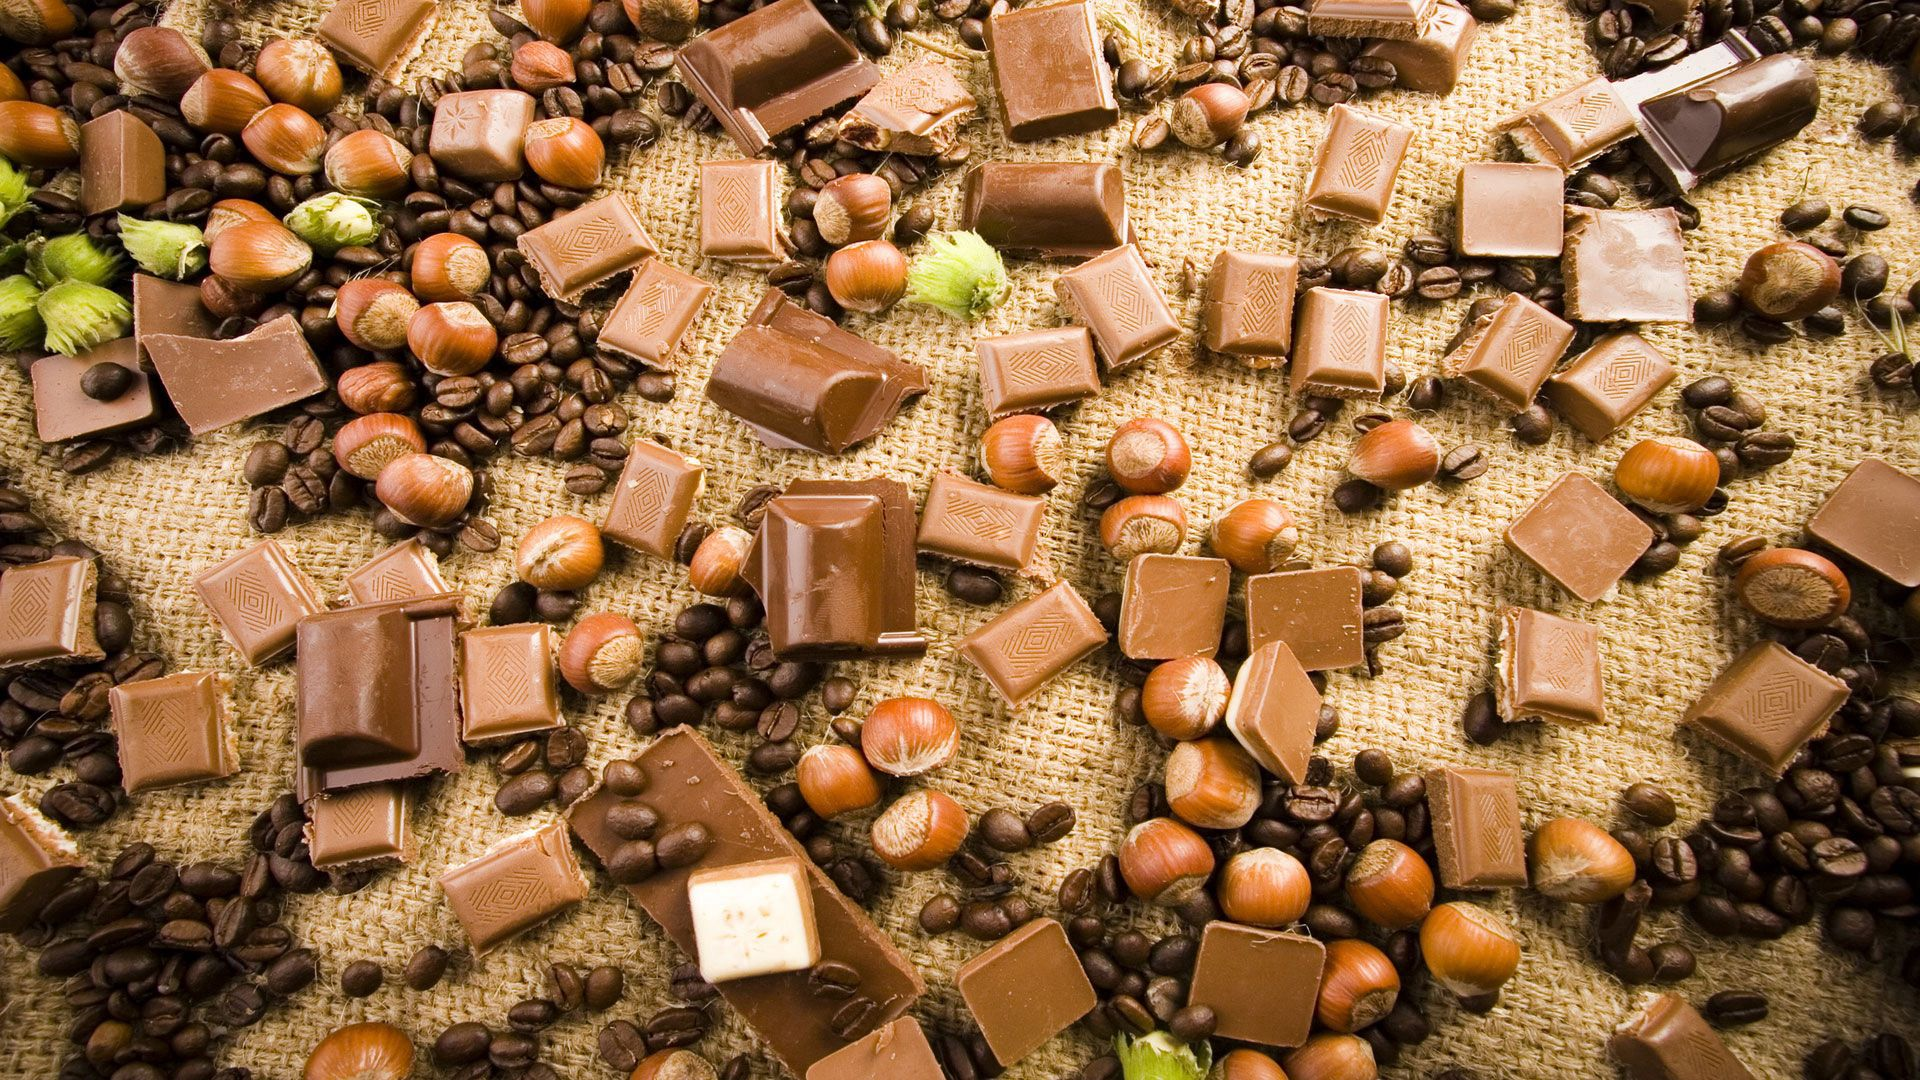 134137 download wallpaper Food, Chocolate, Nuts, Coffee, Tiles, Varieties screensavers and pictures for free